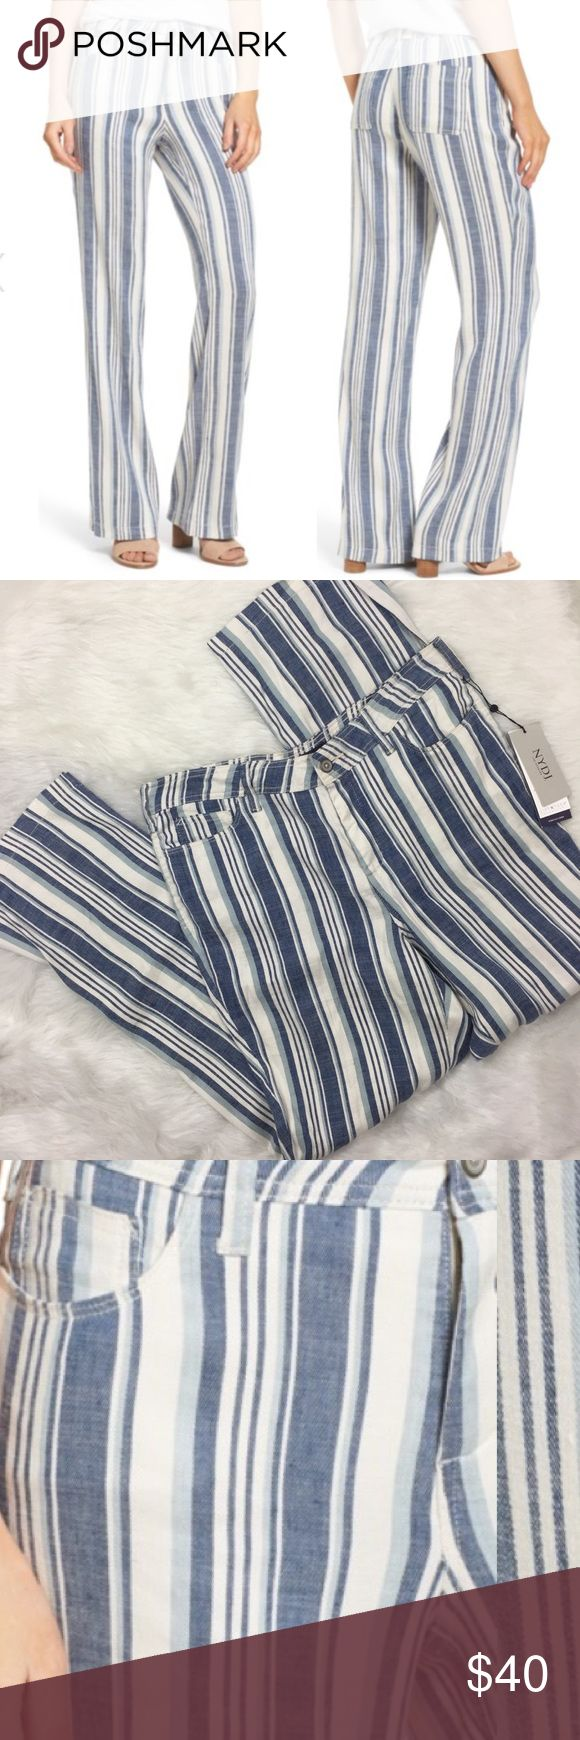 "NYDJ Wylie Striped Linen Blend Pants/trousers Brand new with tags. Plus size 14. Wide-cut legs and variegated vertical stripes add up to figure-elongating style for five-pocket pants fashioned from a stretch-woven linen blend. Of course, NYDJ's exclusive lift-tuck technology helps to flatten the tummy and lift the rear to further the flattery. Petite sizes best fit women 5'4"" & under. - Zip fly with button closure - Five-pocket style - 56% linen, 42% viscose, 2% elastane NYDJ Pants Trousers"